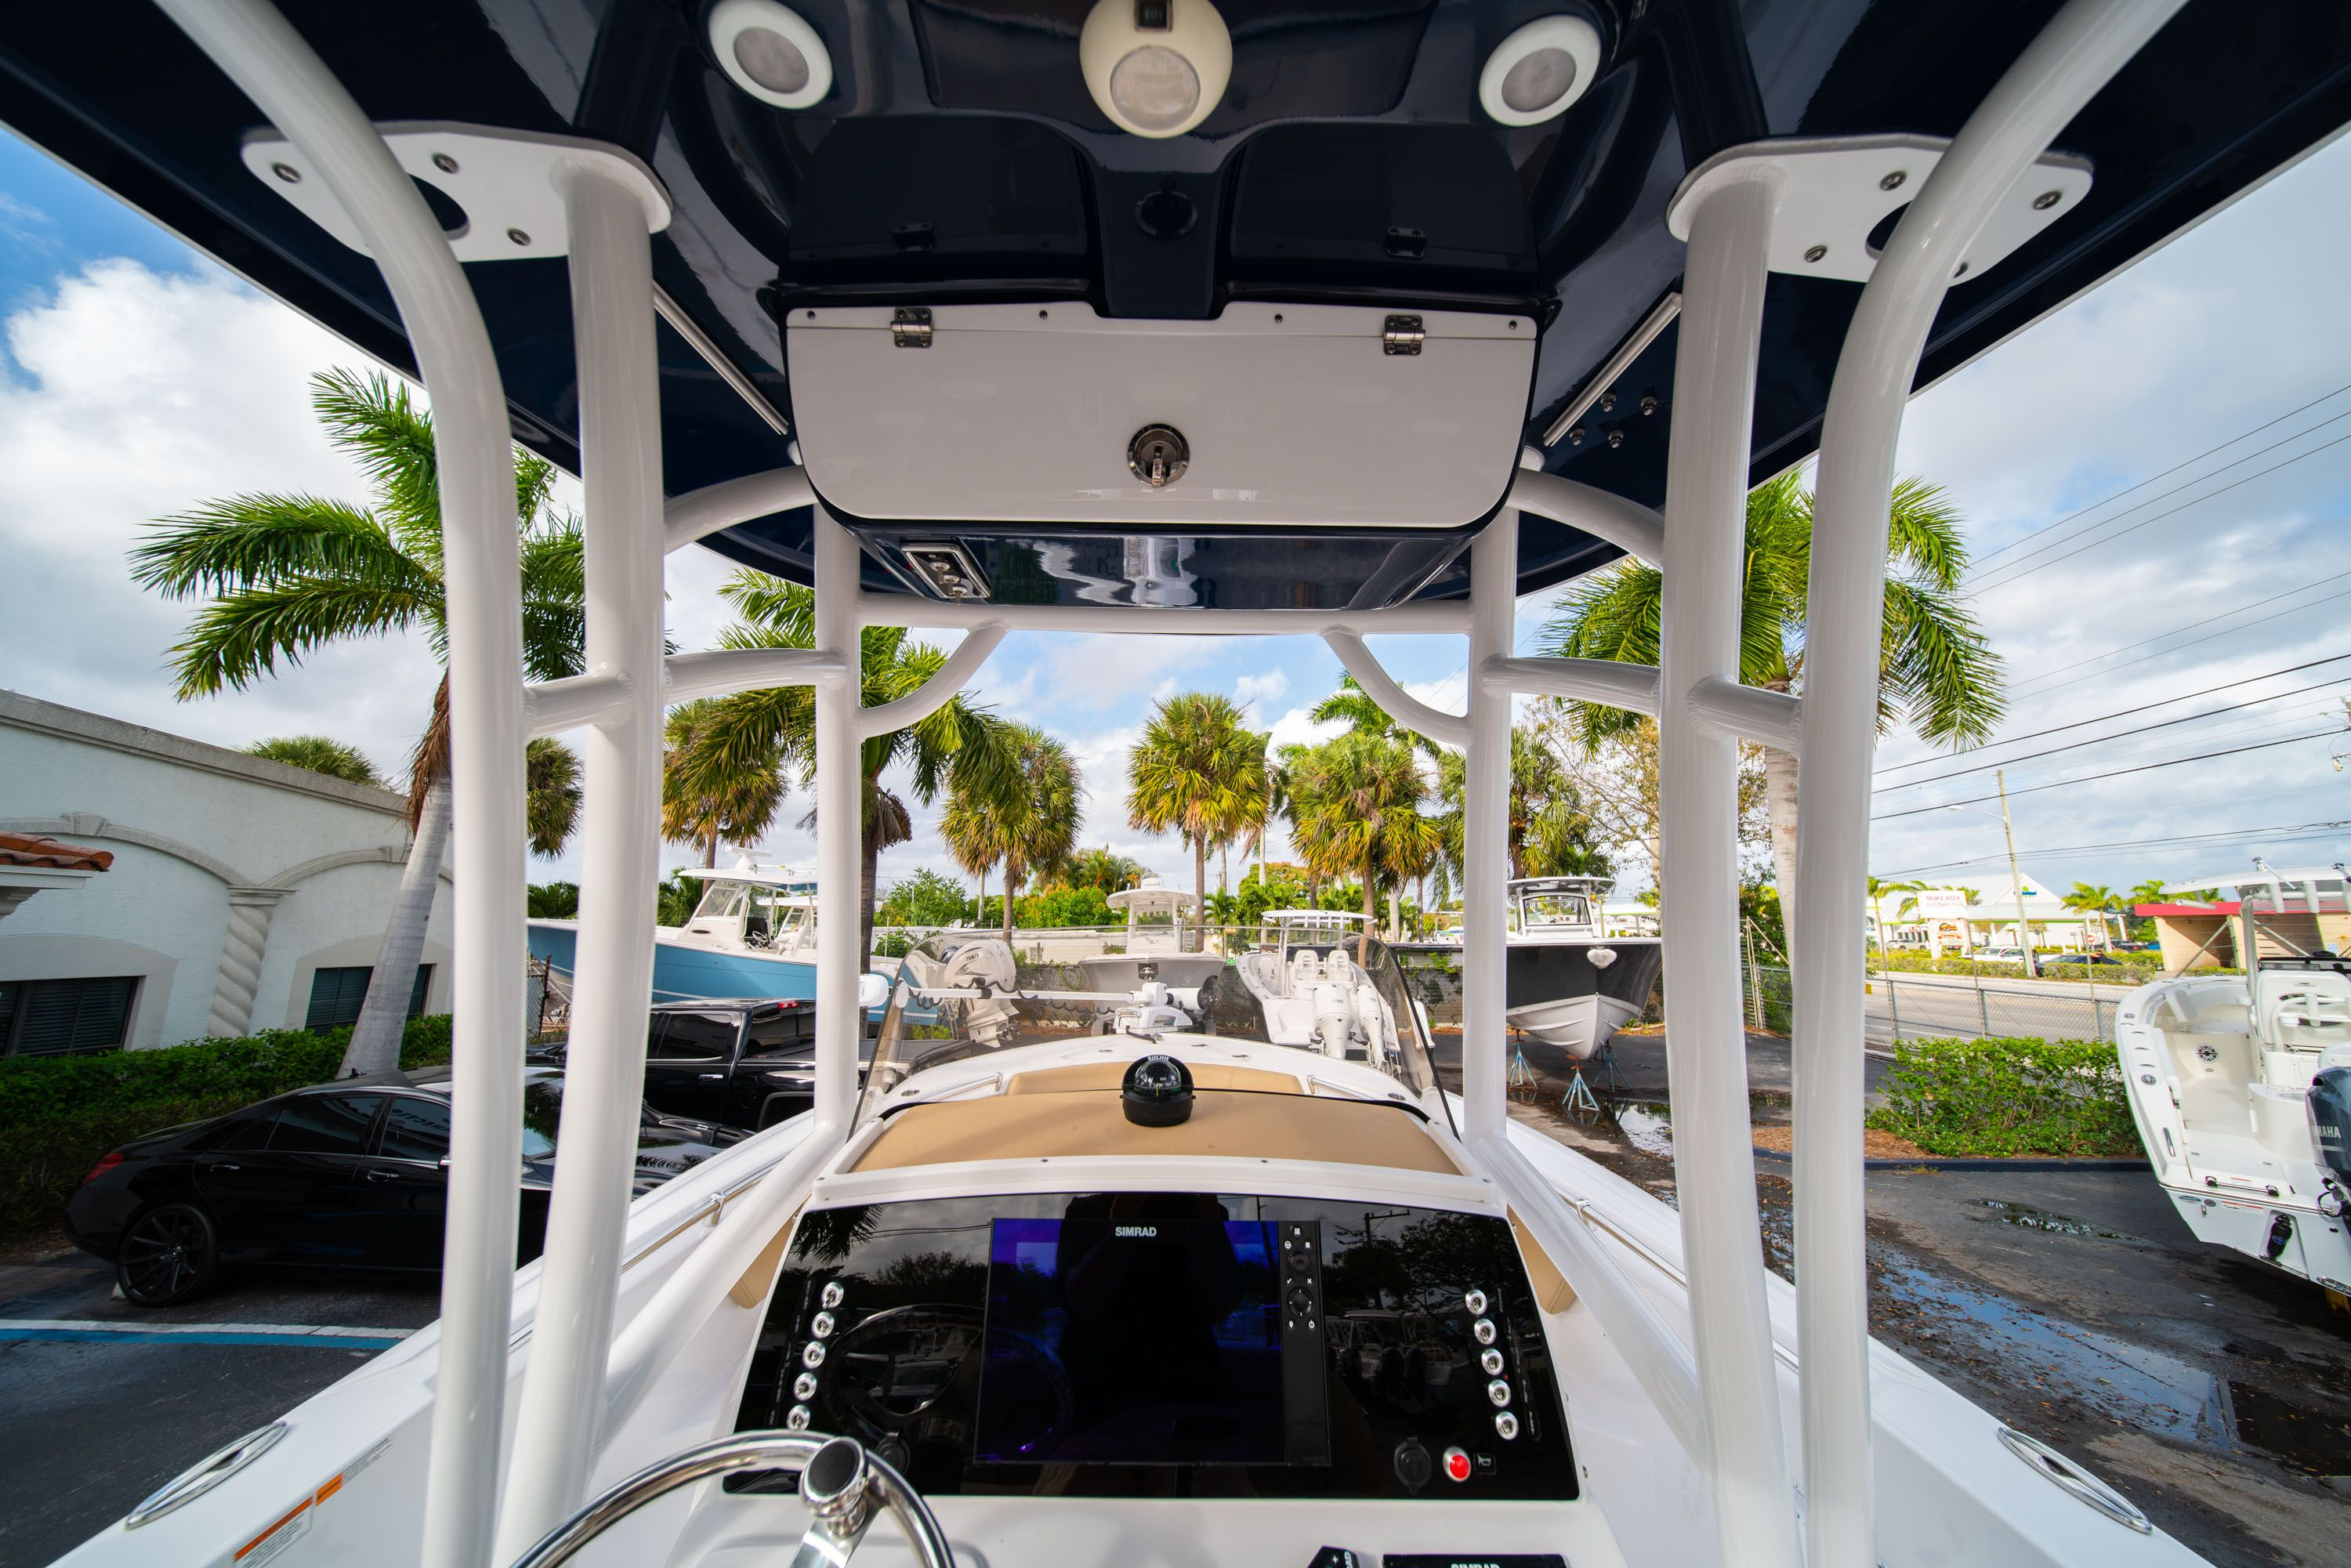 Thumbnail 23 for Used 2018 Sportsman Open 232 Center Console boat for sale in West Palm Beach, FL